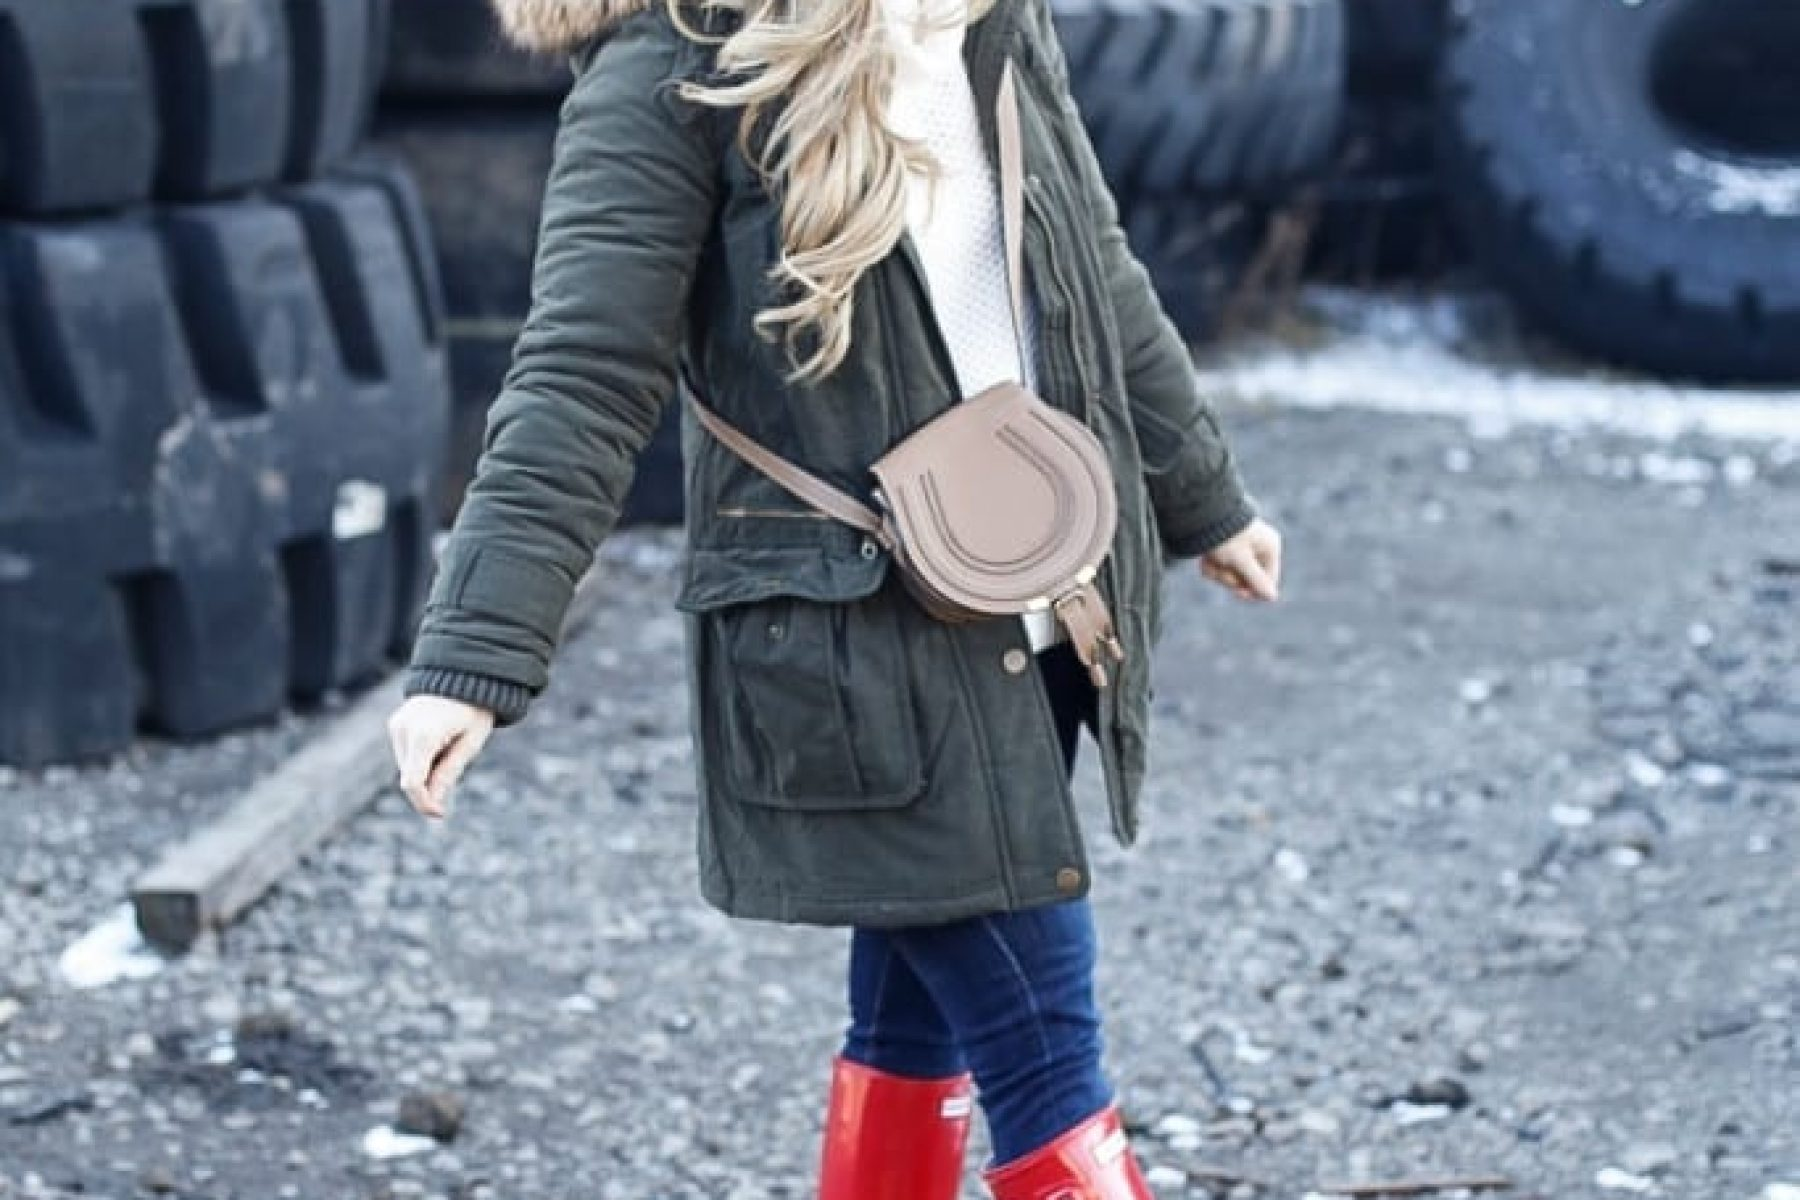 Blogger-Afternoon-Espresso-Fashion-Hunter-Boots-Joe's Jeans-Chloe-Bag-Halo-Couture-Rustic (2 of 9)